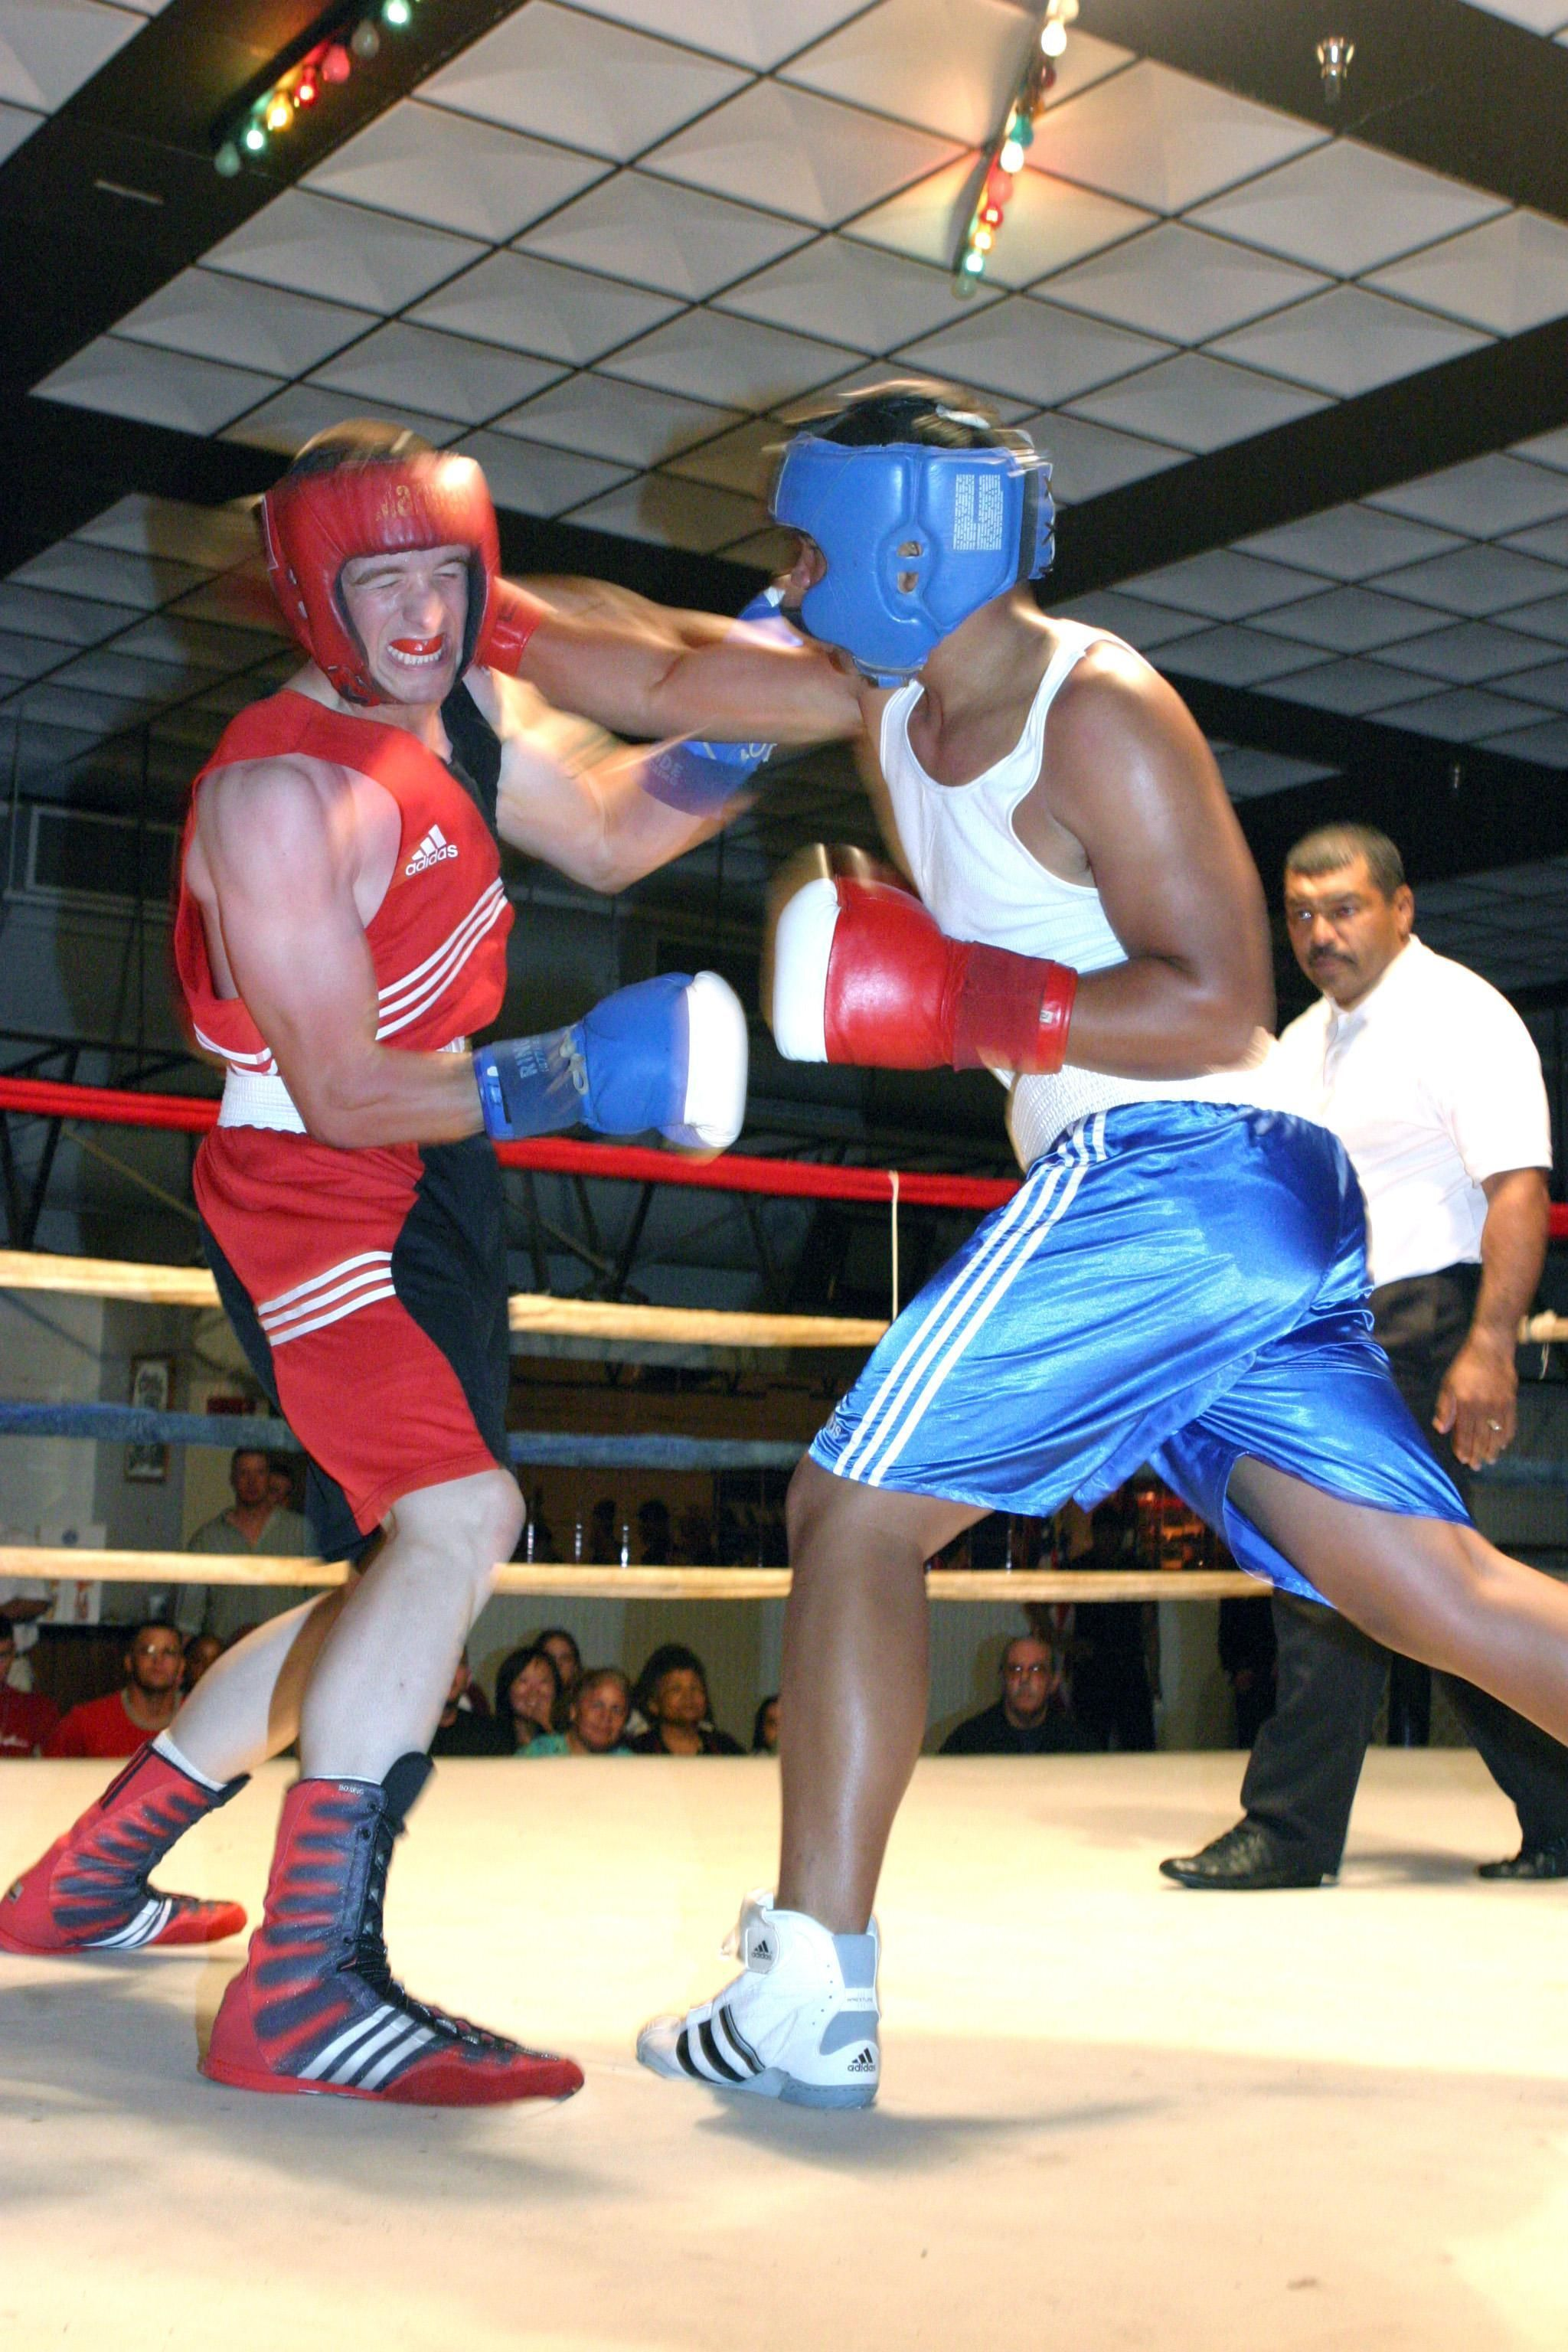 Ouch-boxing-footwork